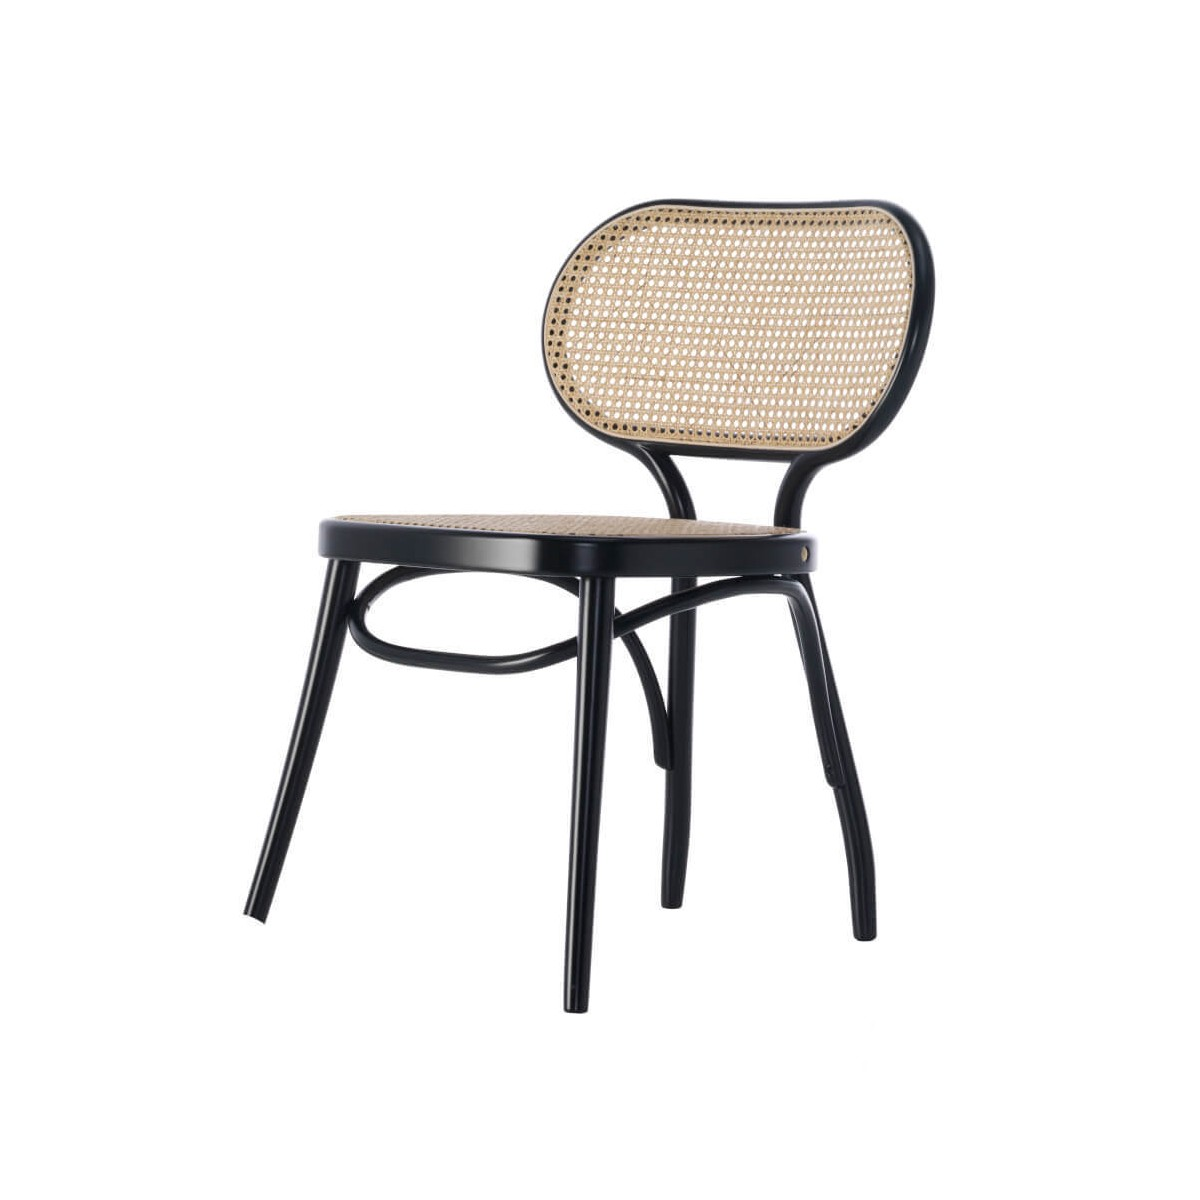 Chaise Bodystuhl Wiener GTV Design Noir | Made In Design